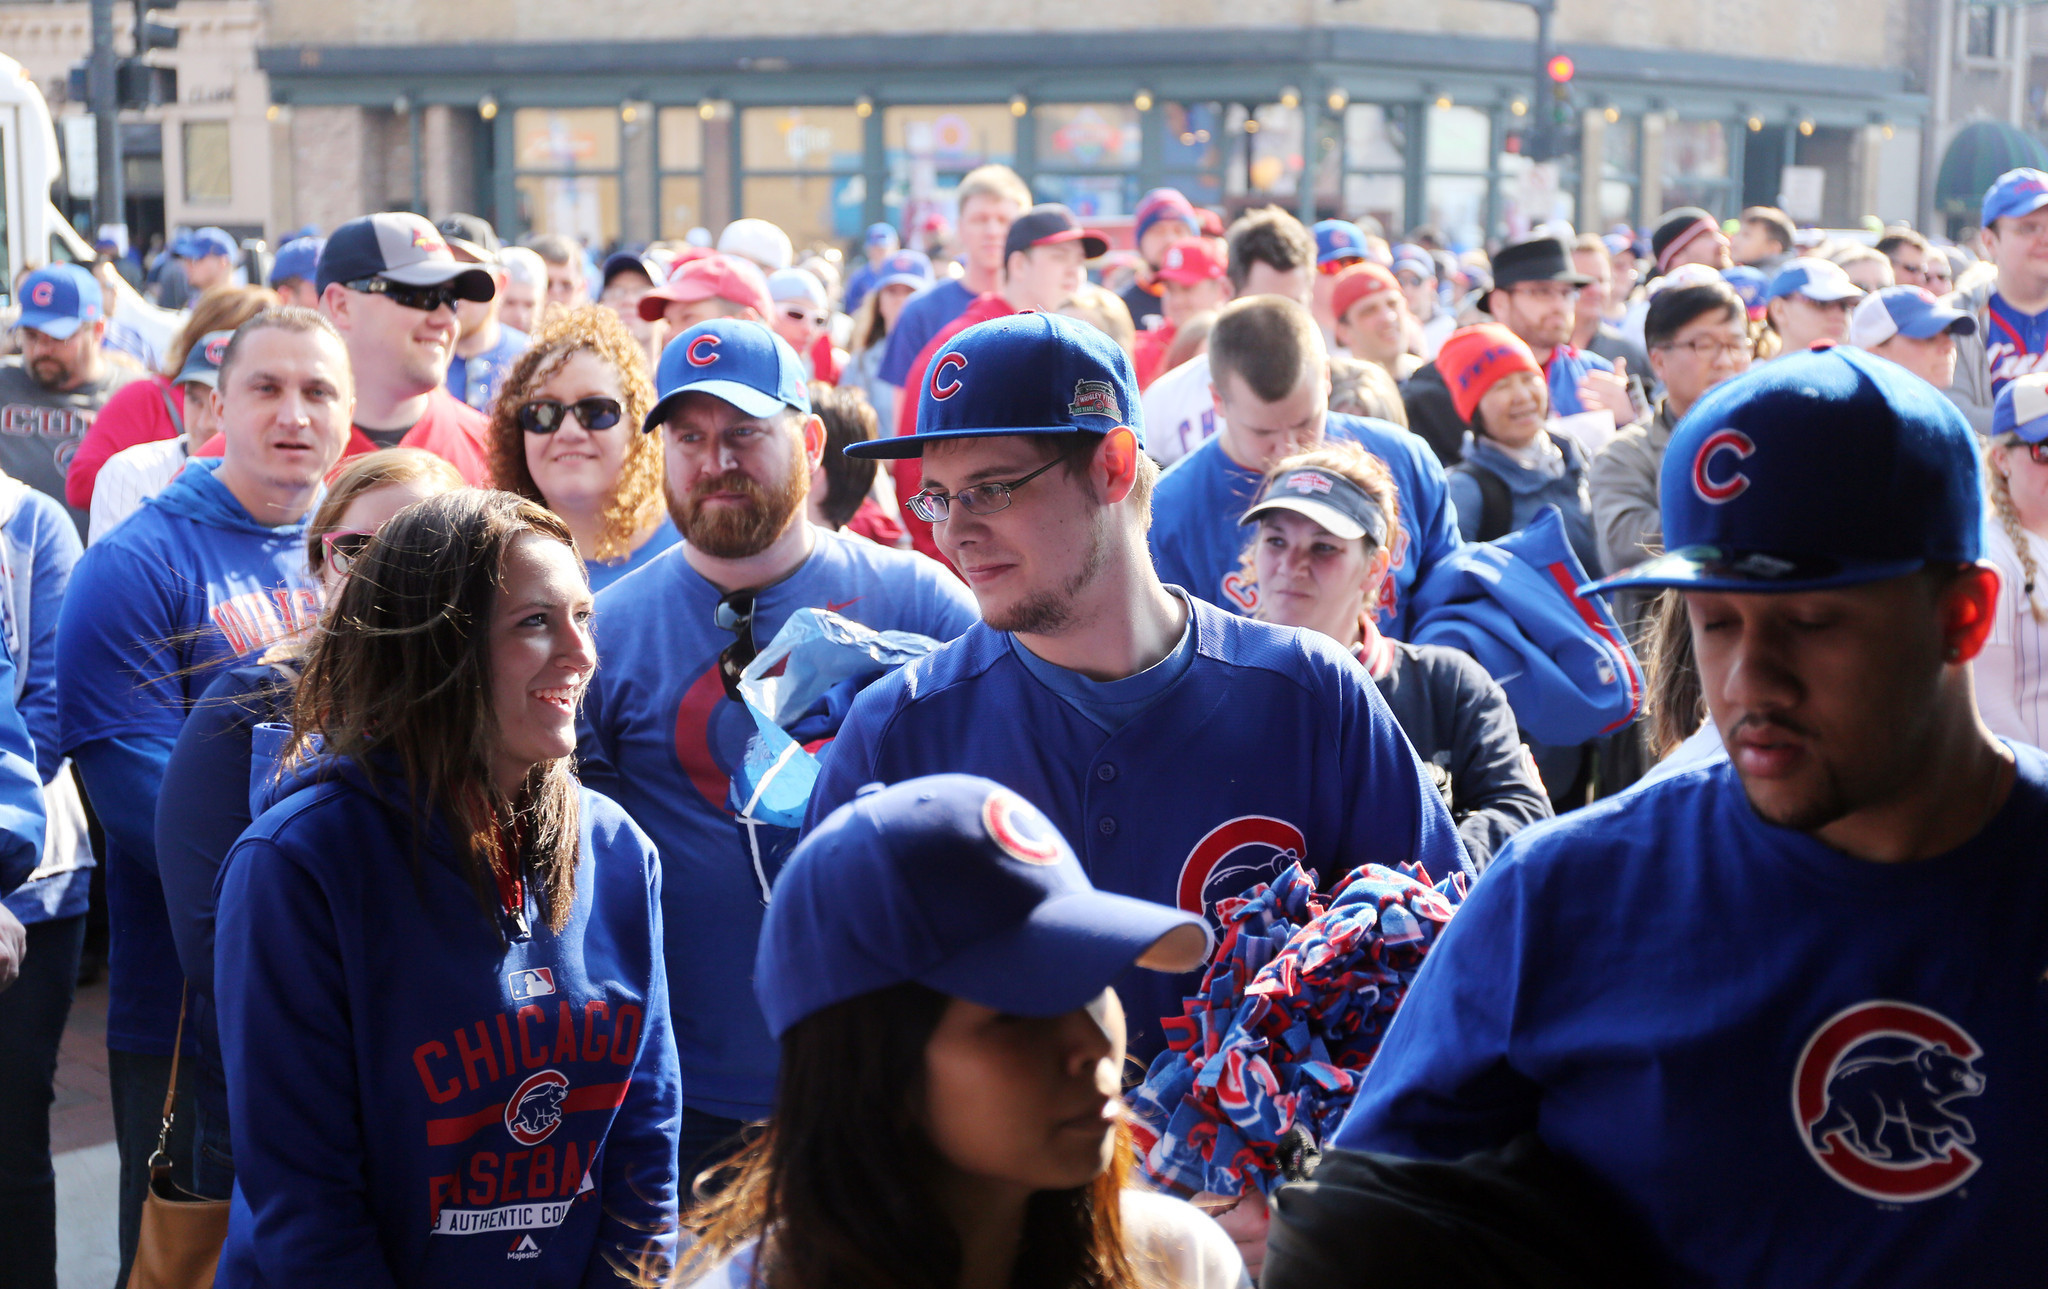 Cubs fans gear up for home opener - Chicago Tribune